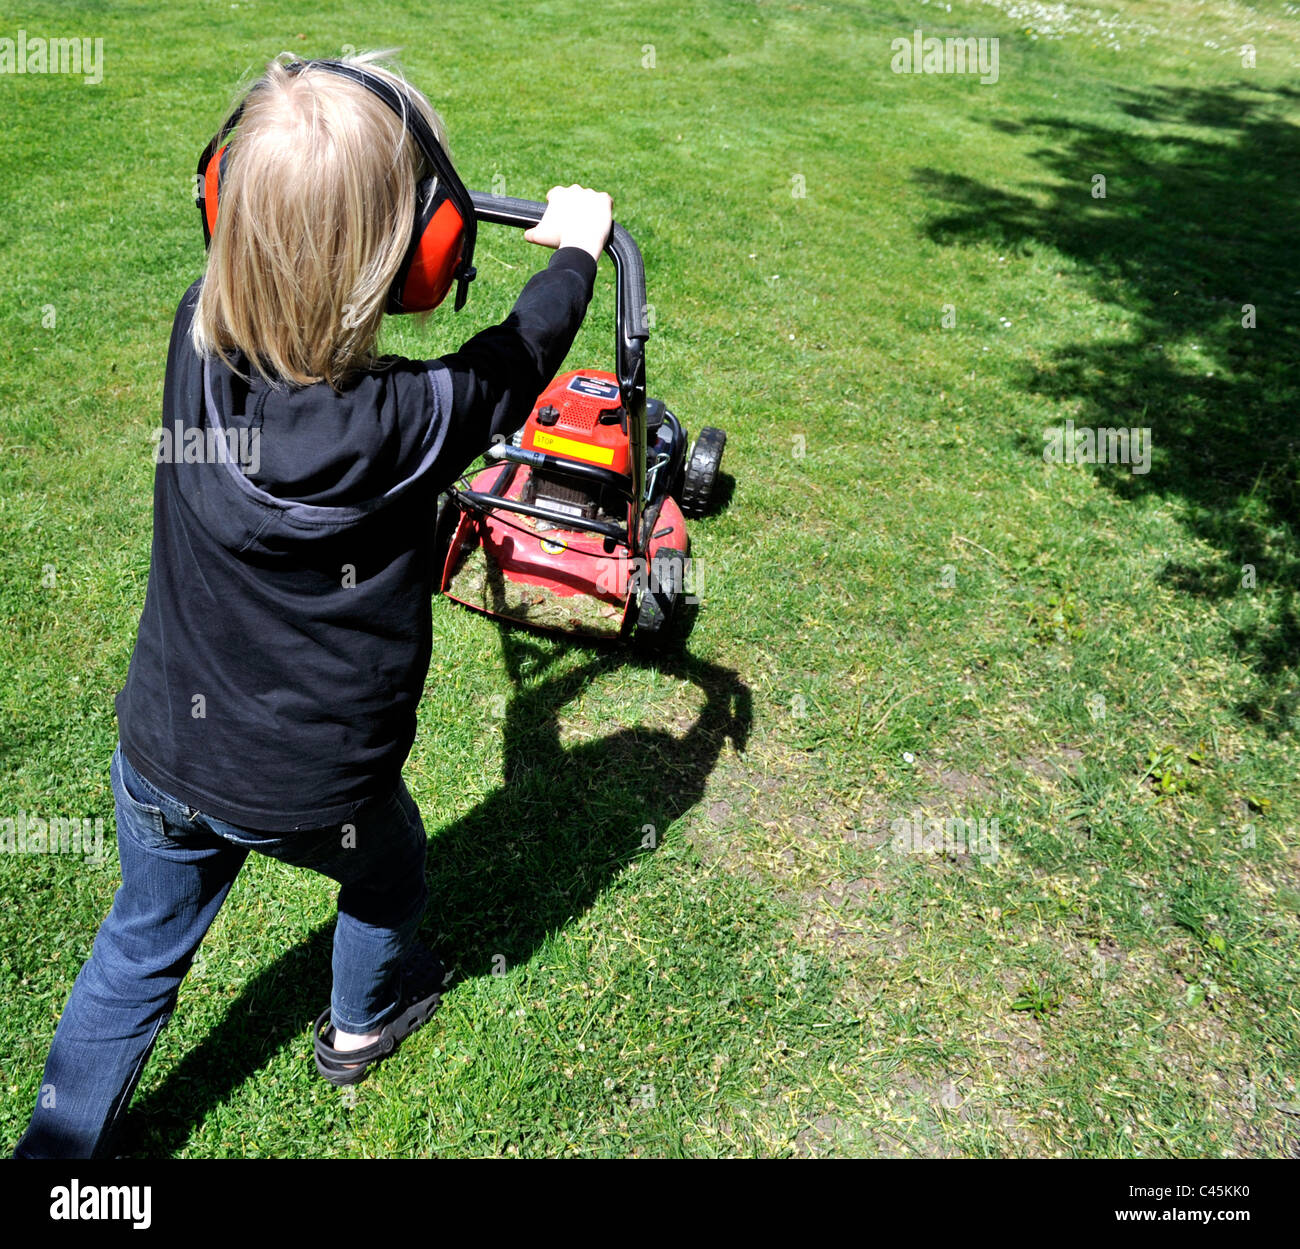 Blond boy cutting grass with a lawn mover - Stock Image